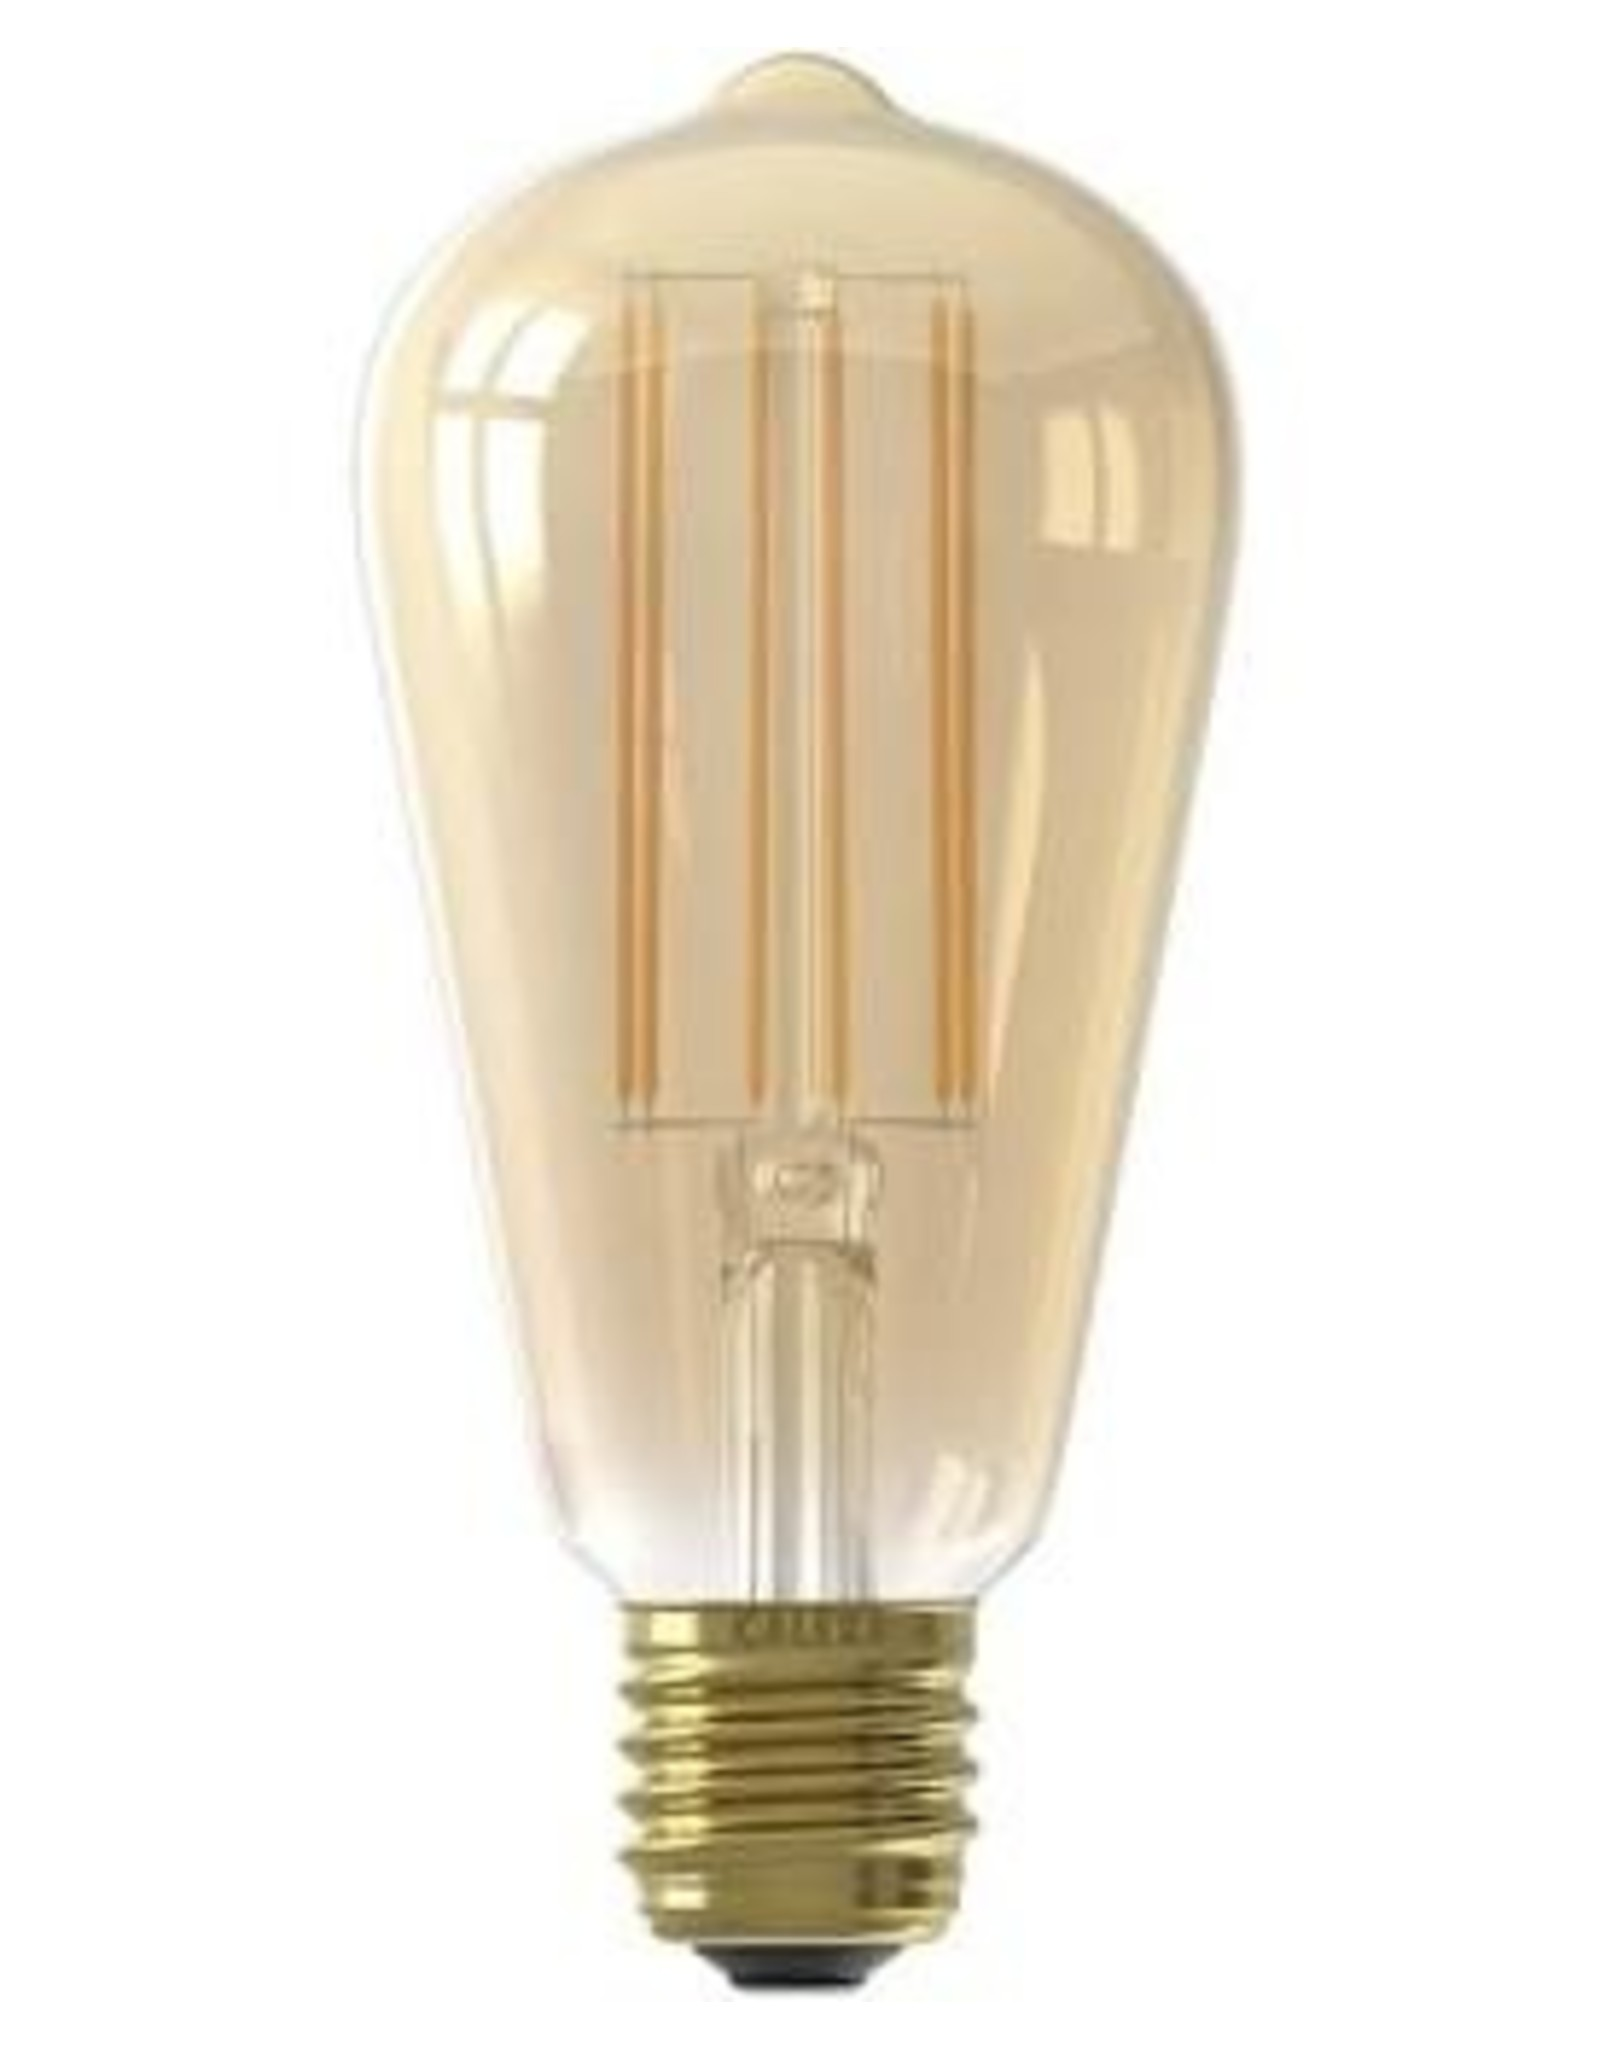 Calex LED Full Glass LongFilament Rustik Lamp 220-240V 4W 320lm E27 ST64, Gold 2100K Dimmable, energy label A+